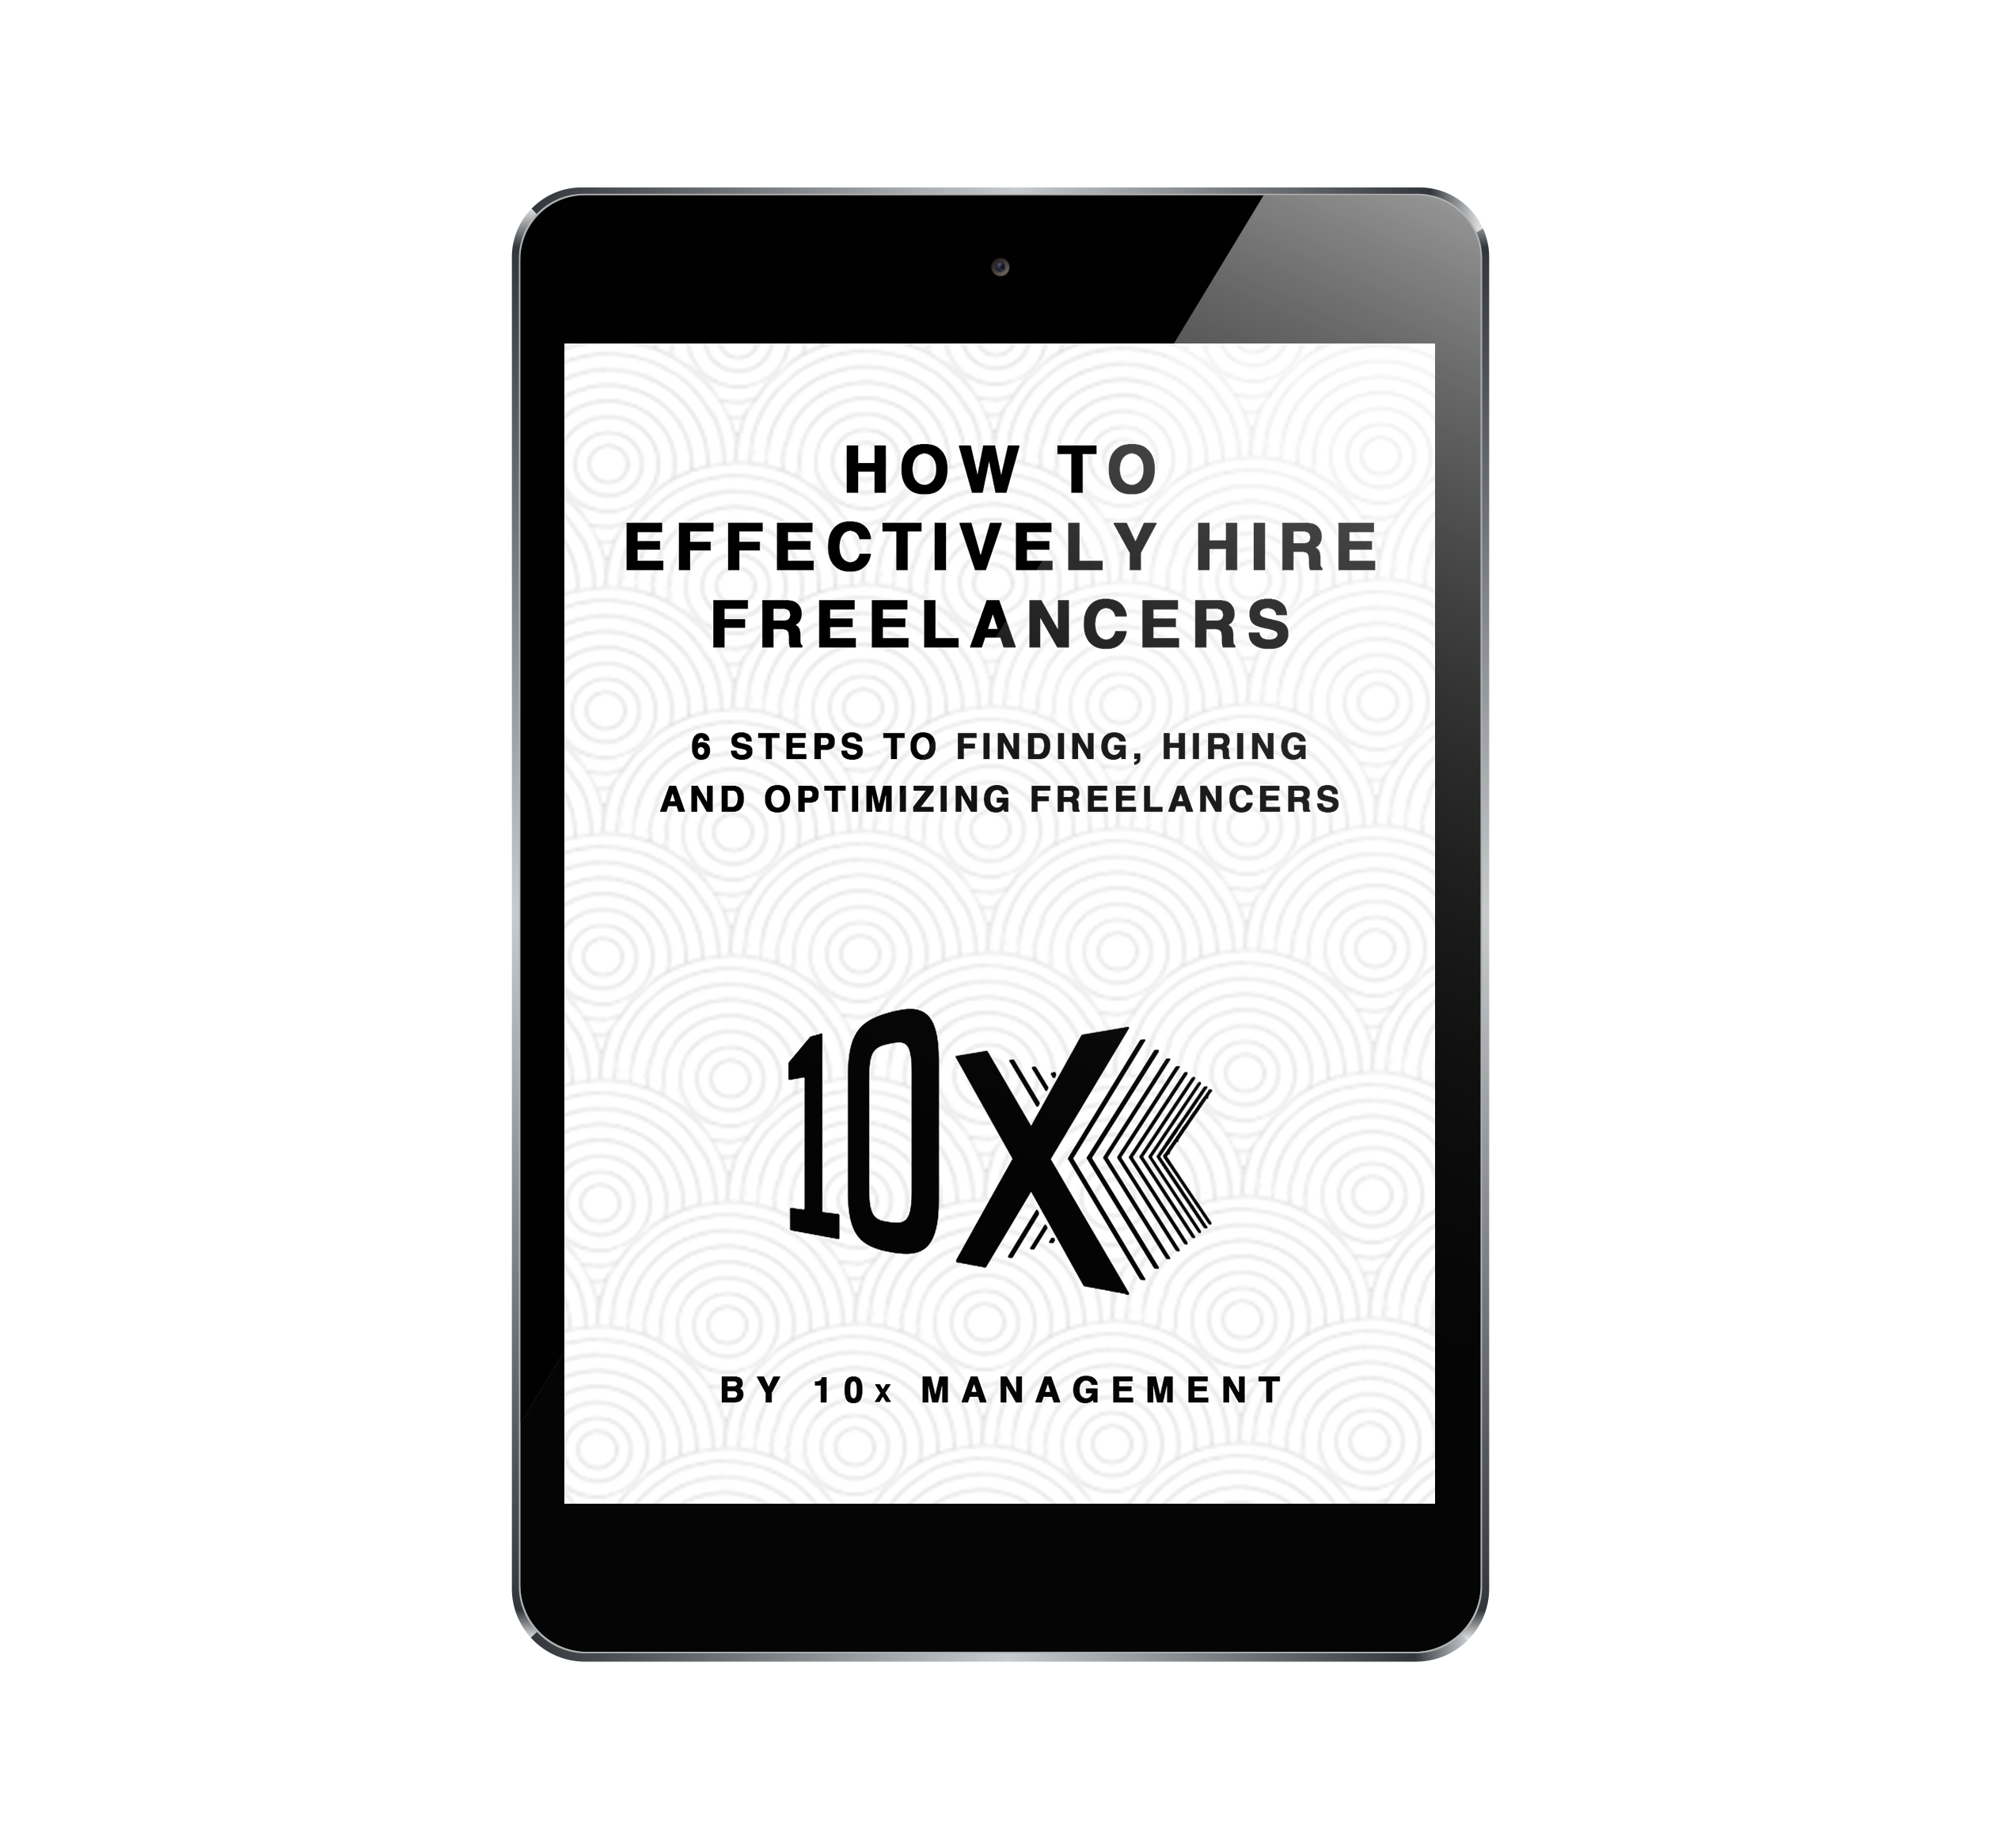 6 Steps to Finding, Hiring and Optimizing Freelancers_iPad